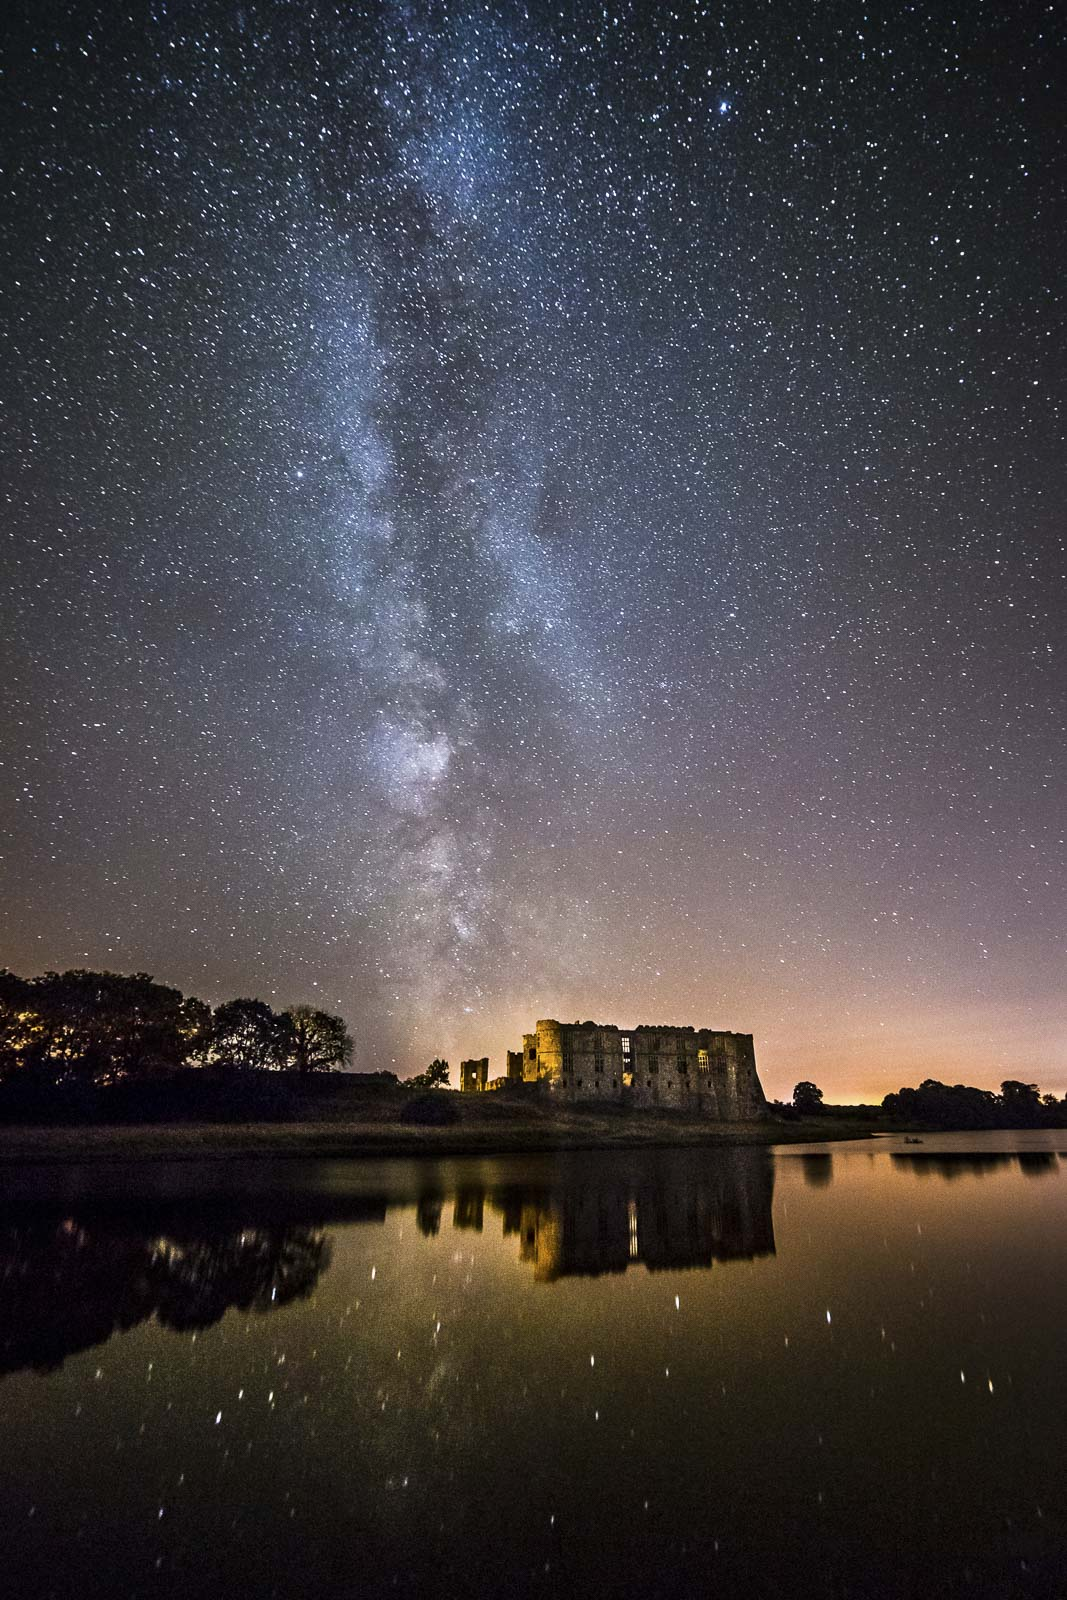 castle under the milky way